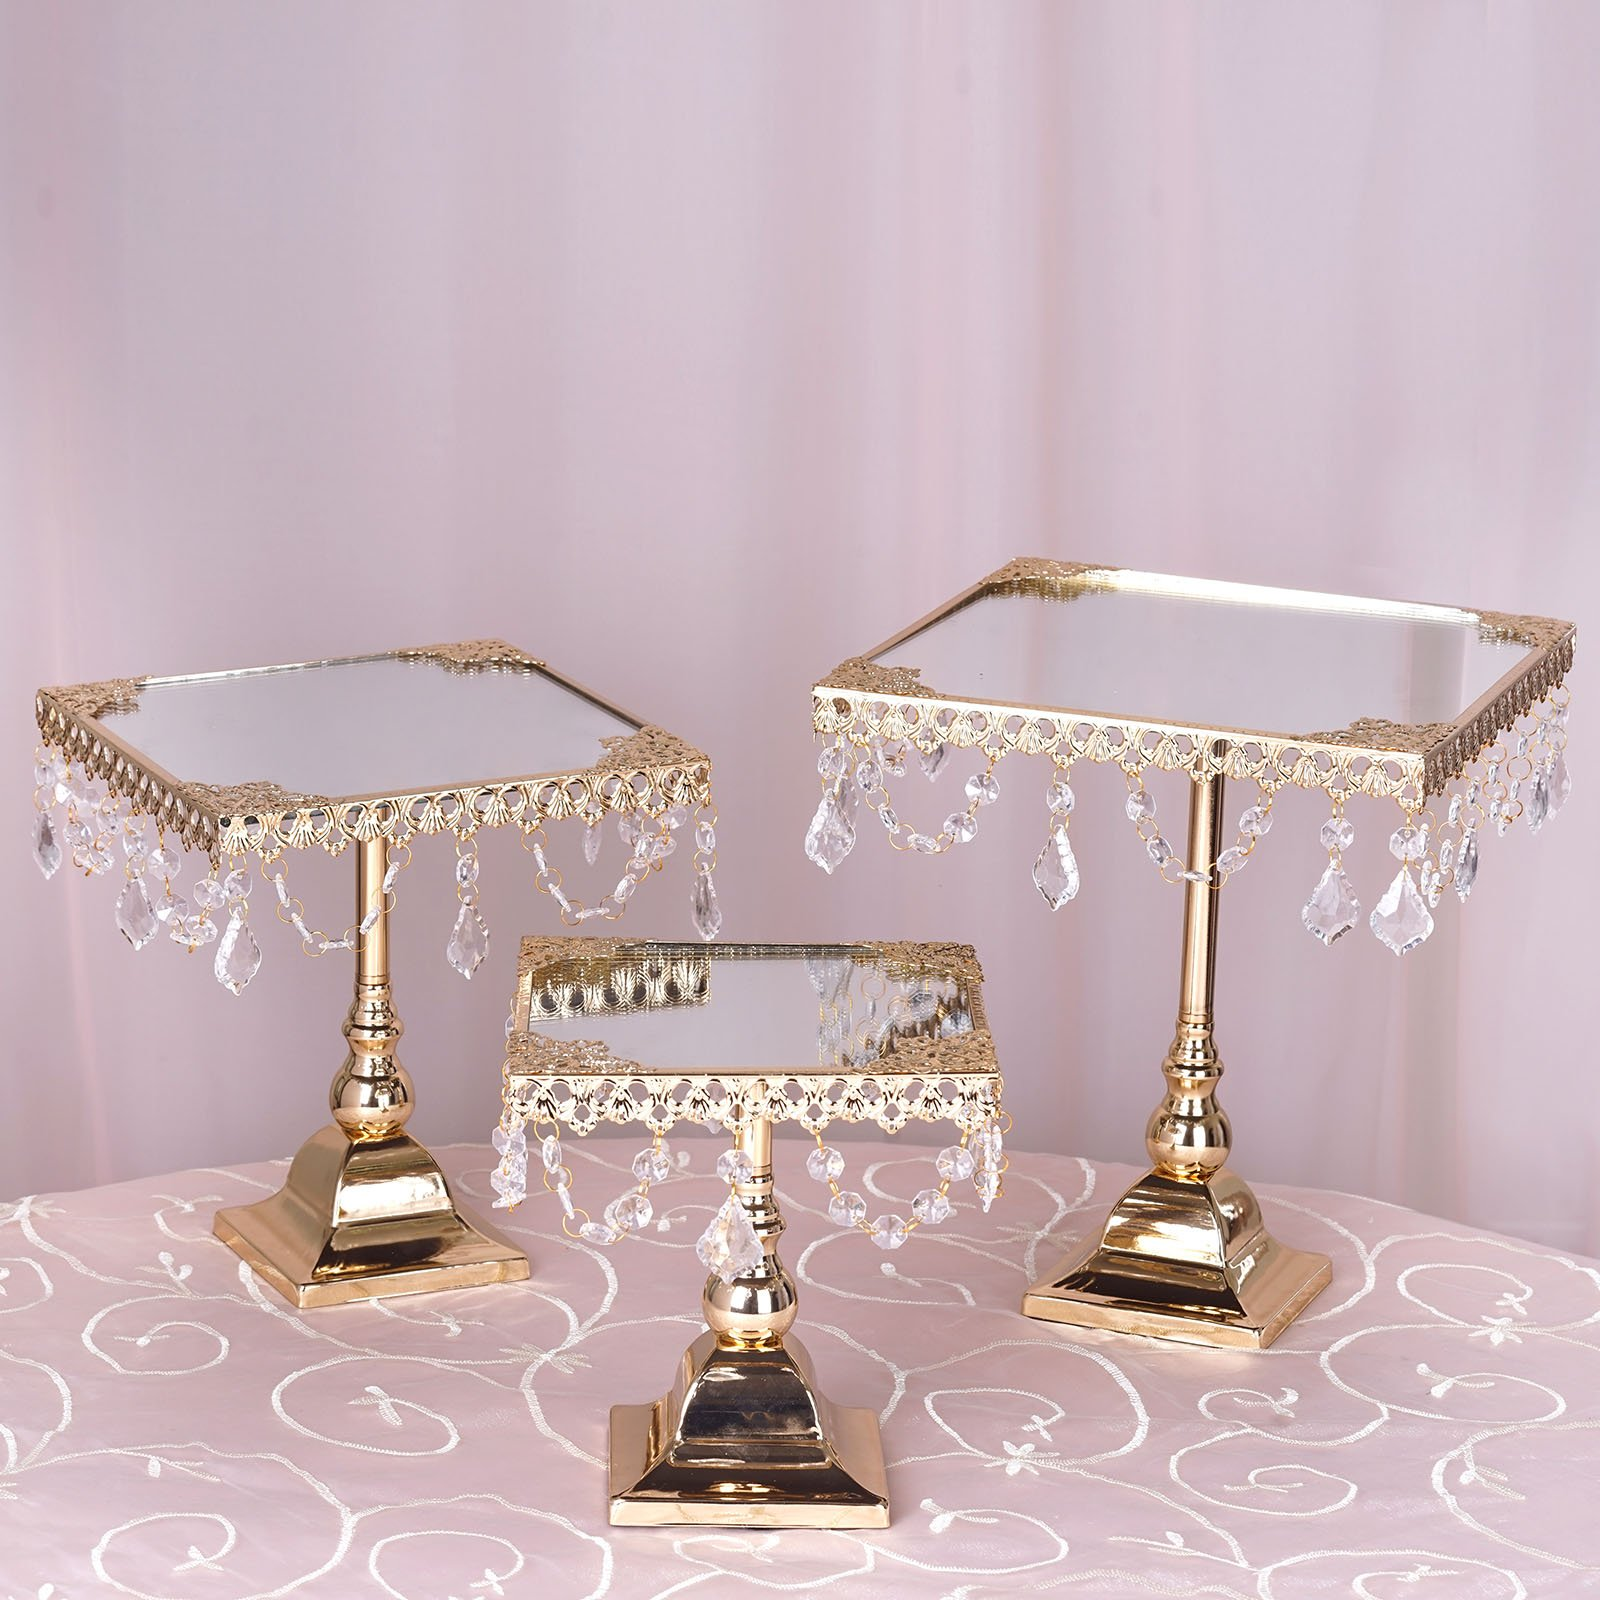 Efavormart Set of 3 Square Mirror Top Cup Cake Riser Centerpiece Stand Wedding Birthday Party Dessert Rise Cake Display Stand